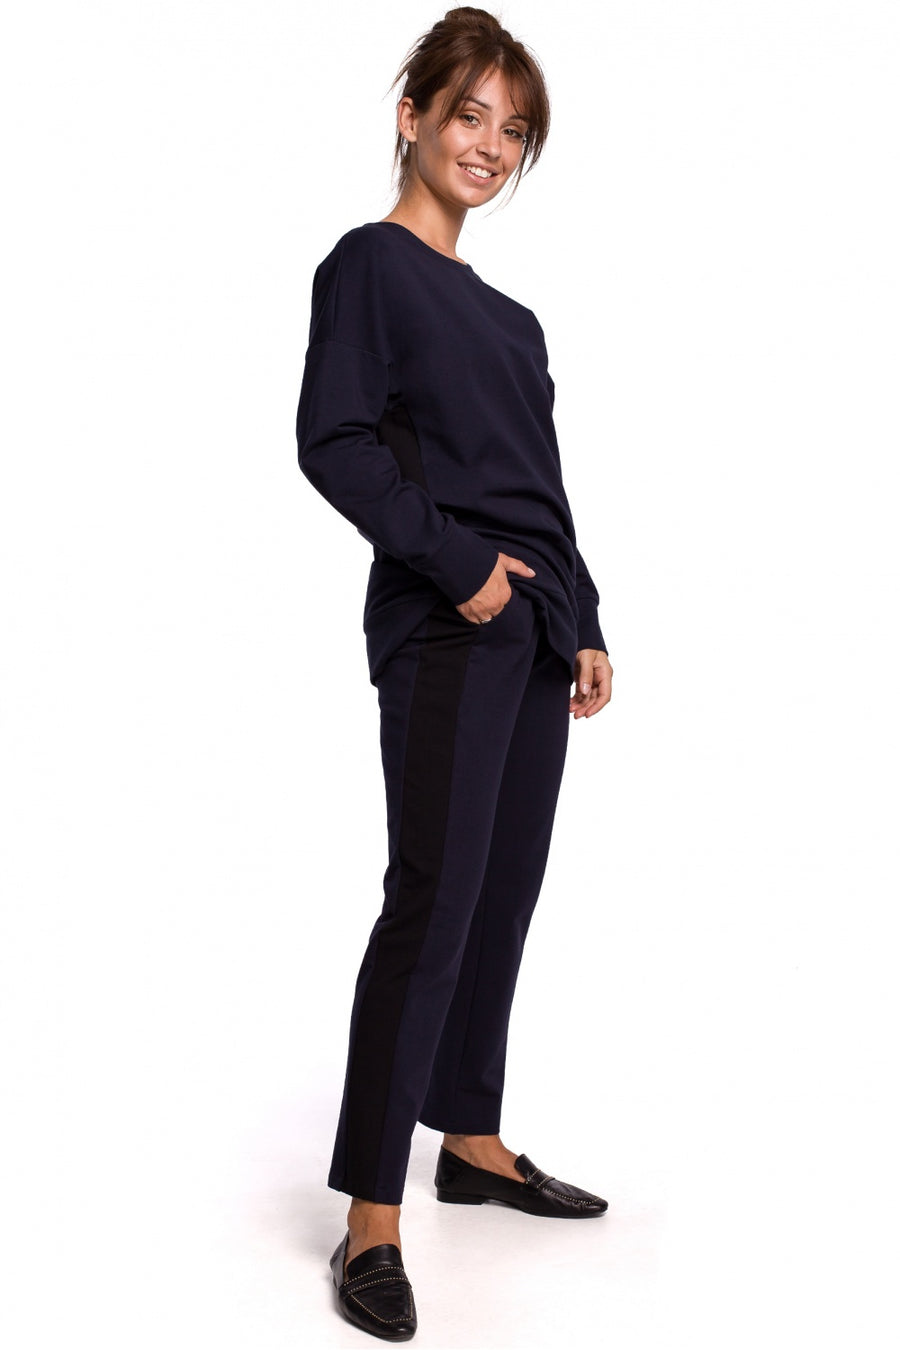 Tracksuit trousers model 147192 BE